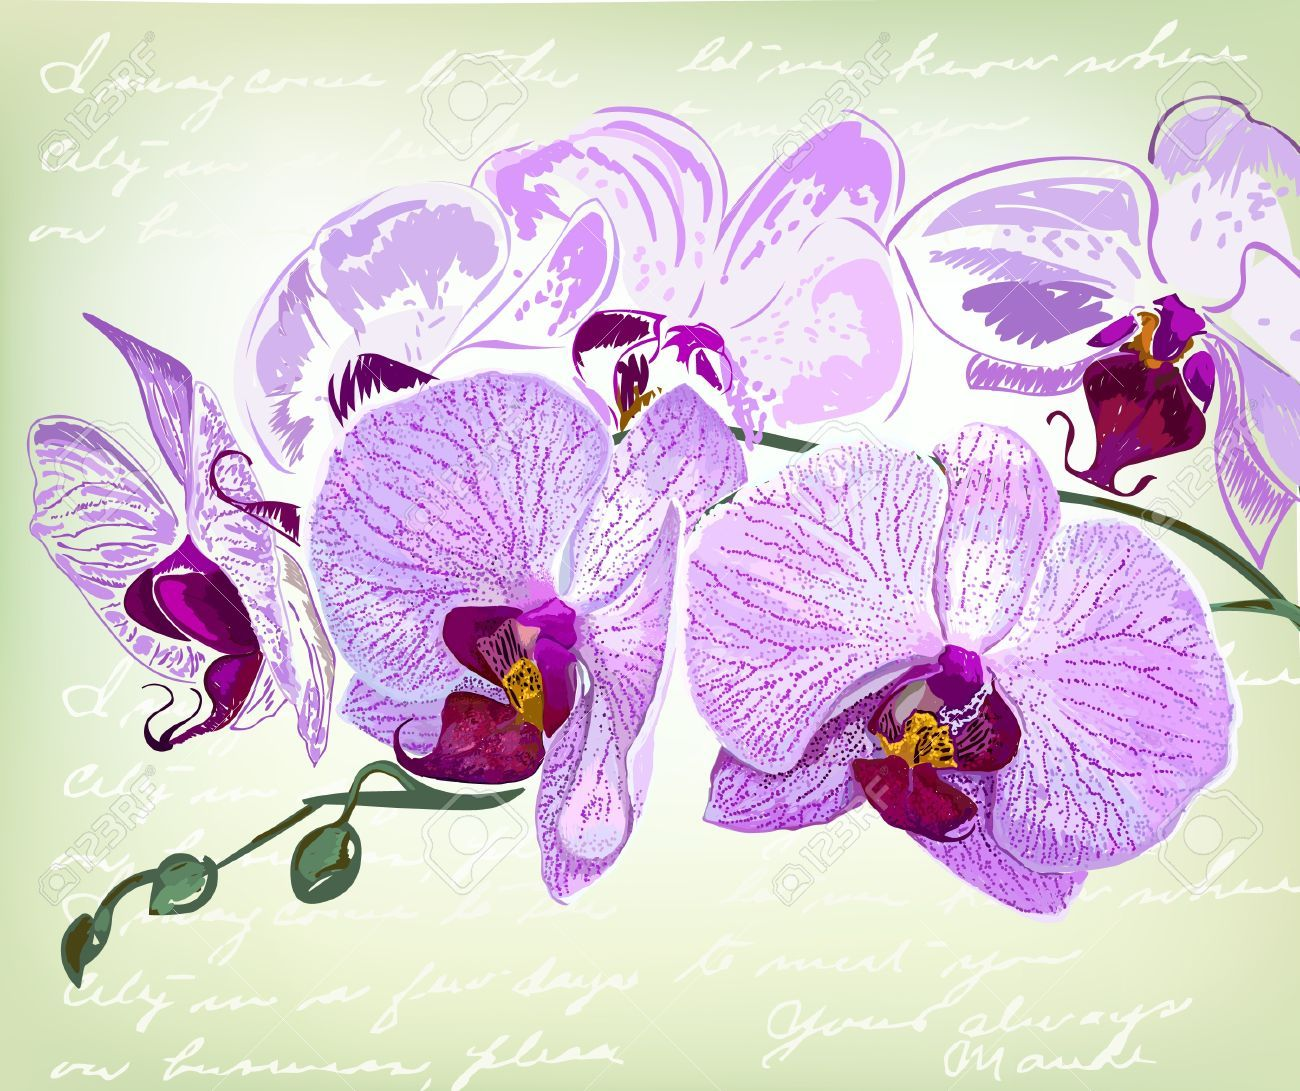 Stock Photo Dessin Orchidee Dessin Fleur Et Beaux Dessins